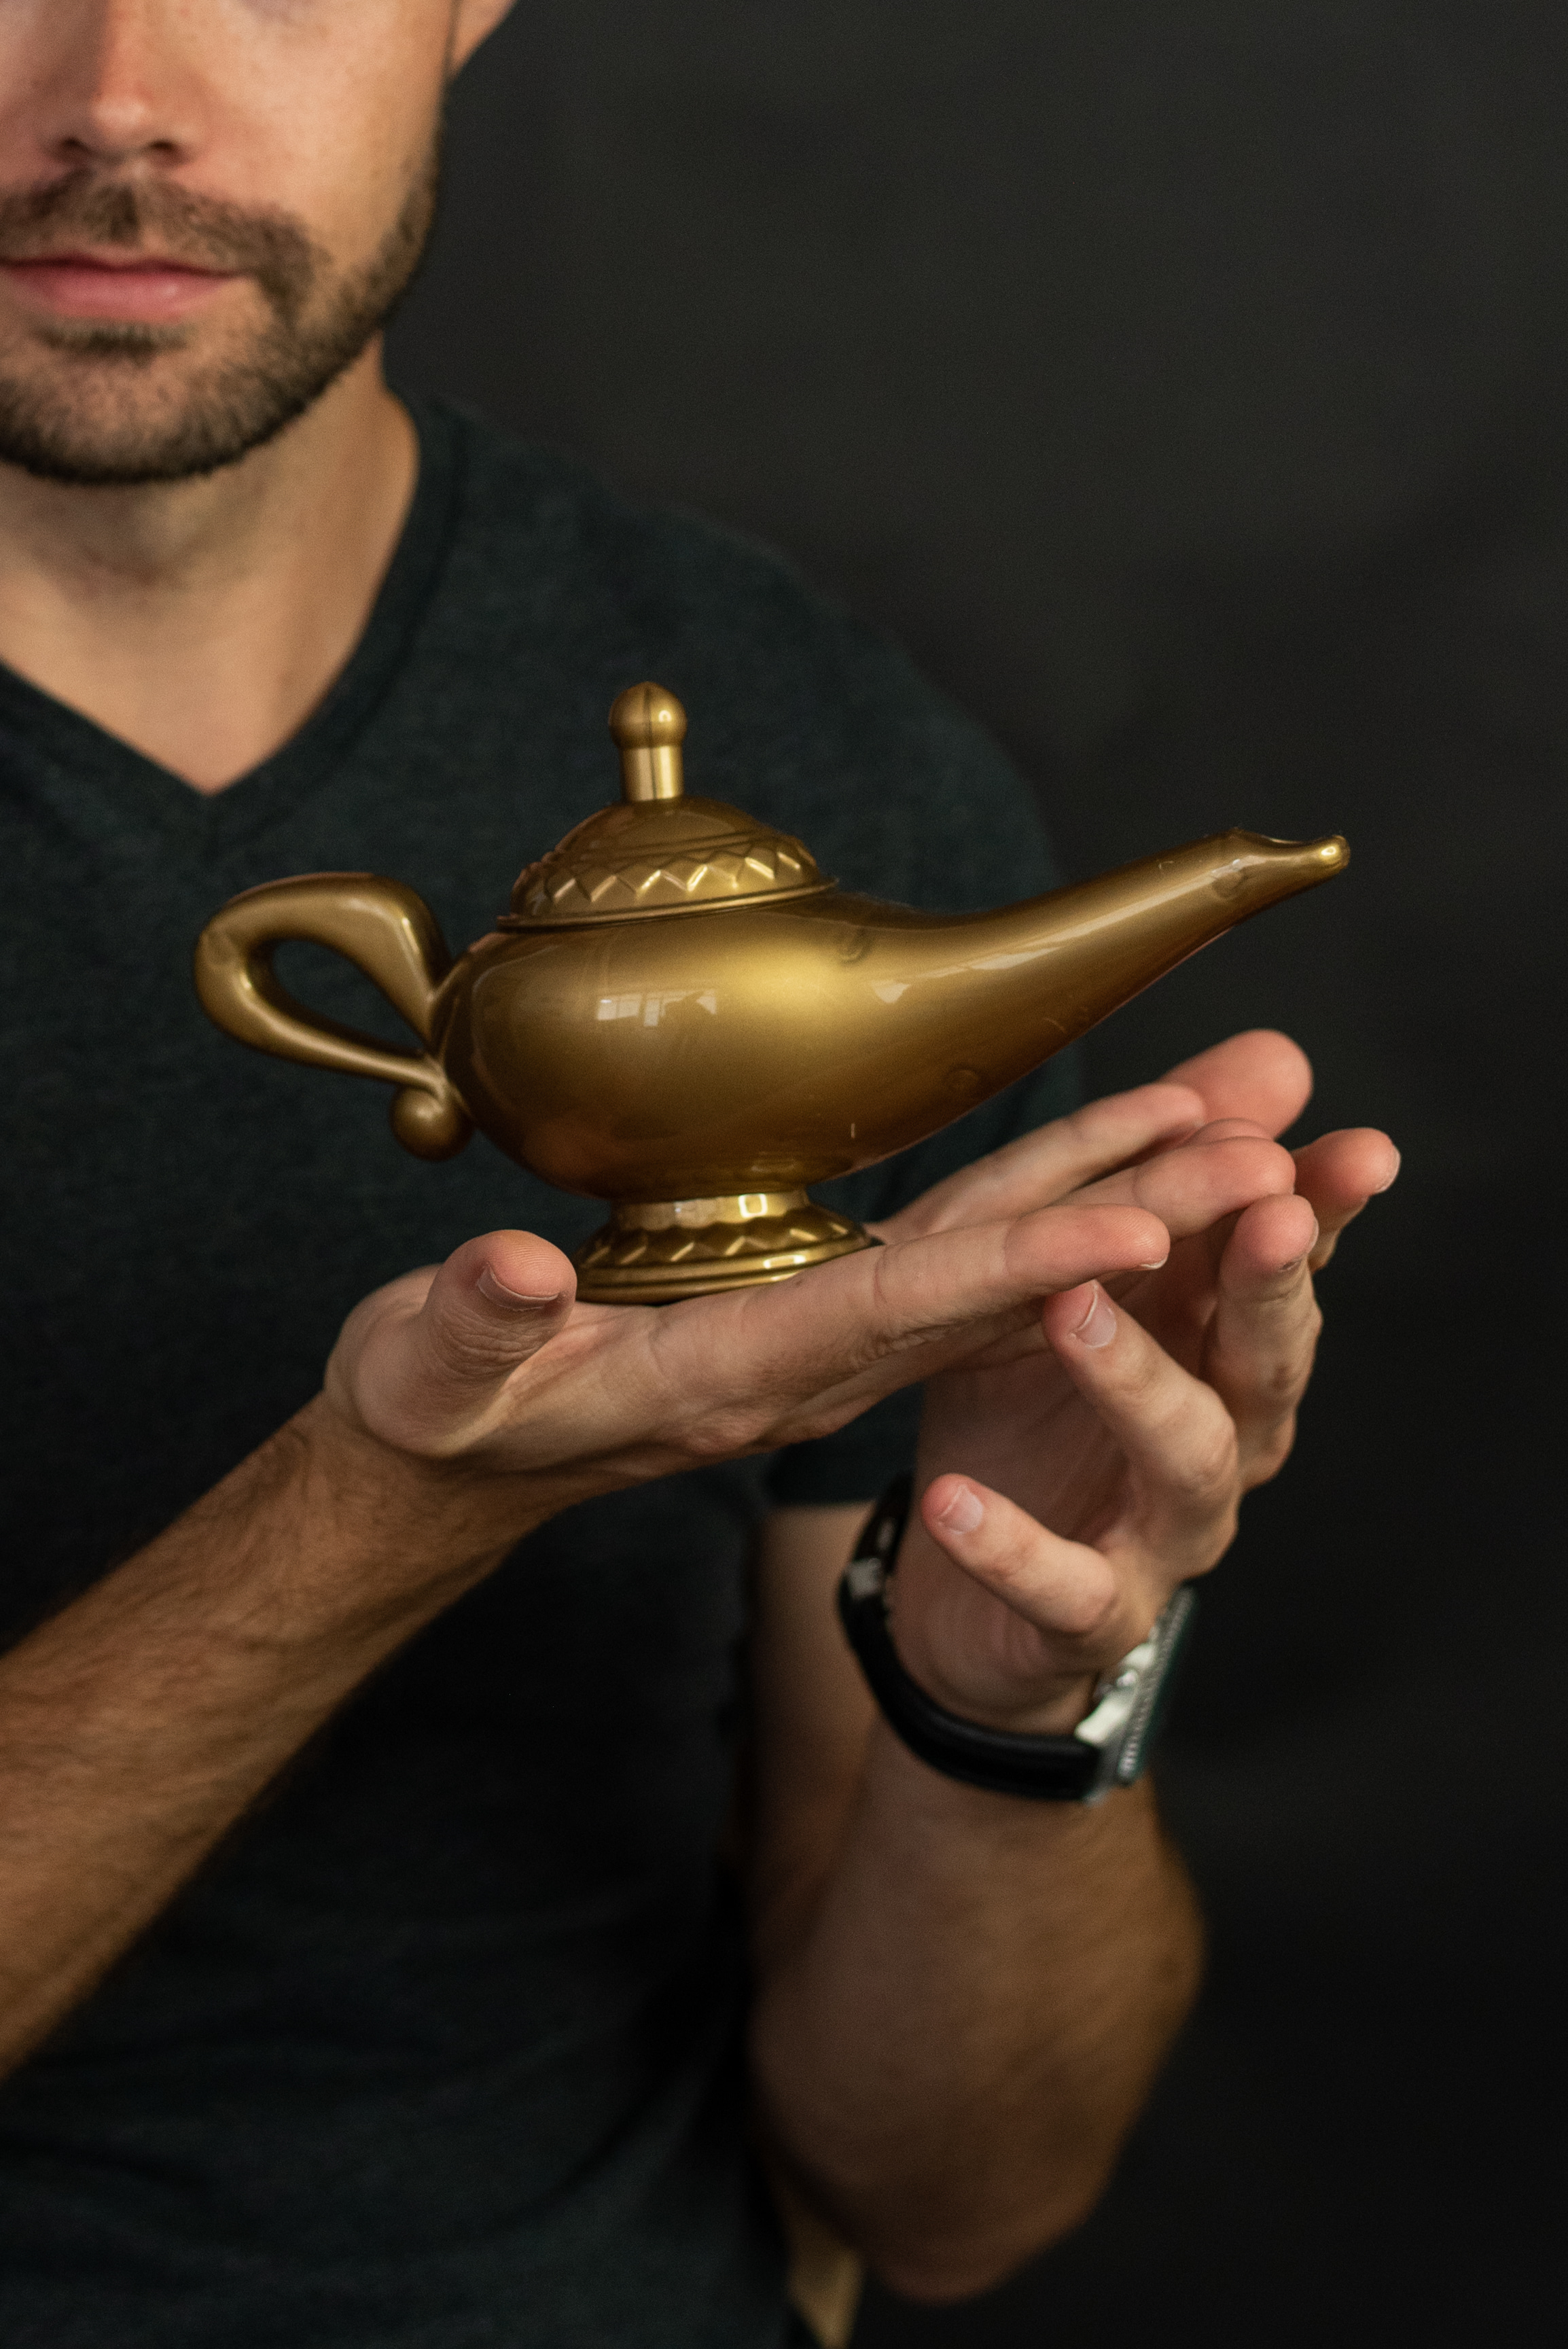 thumbnail 3 - Gold-Genie-Lamp-Plastic-Costume-Accessory-Magical-Prince-Prop-Decoration